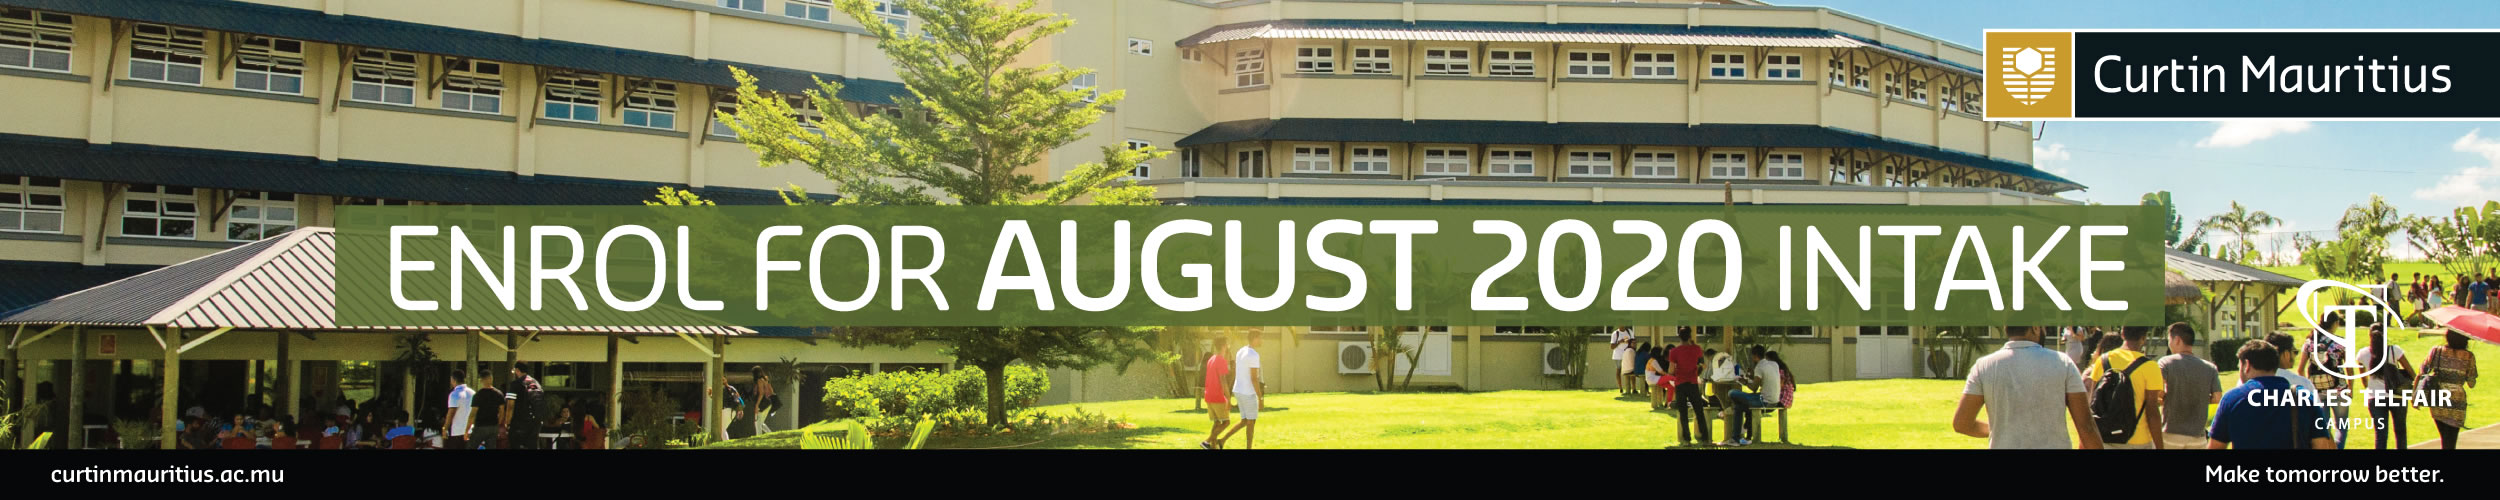 Enrol for August 2020 Intake